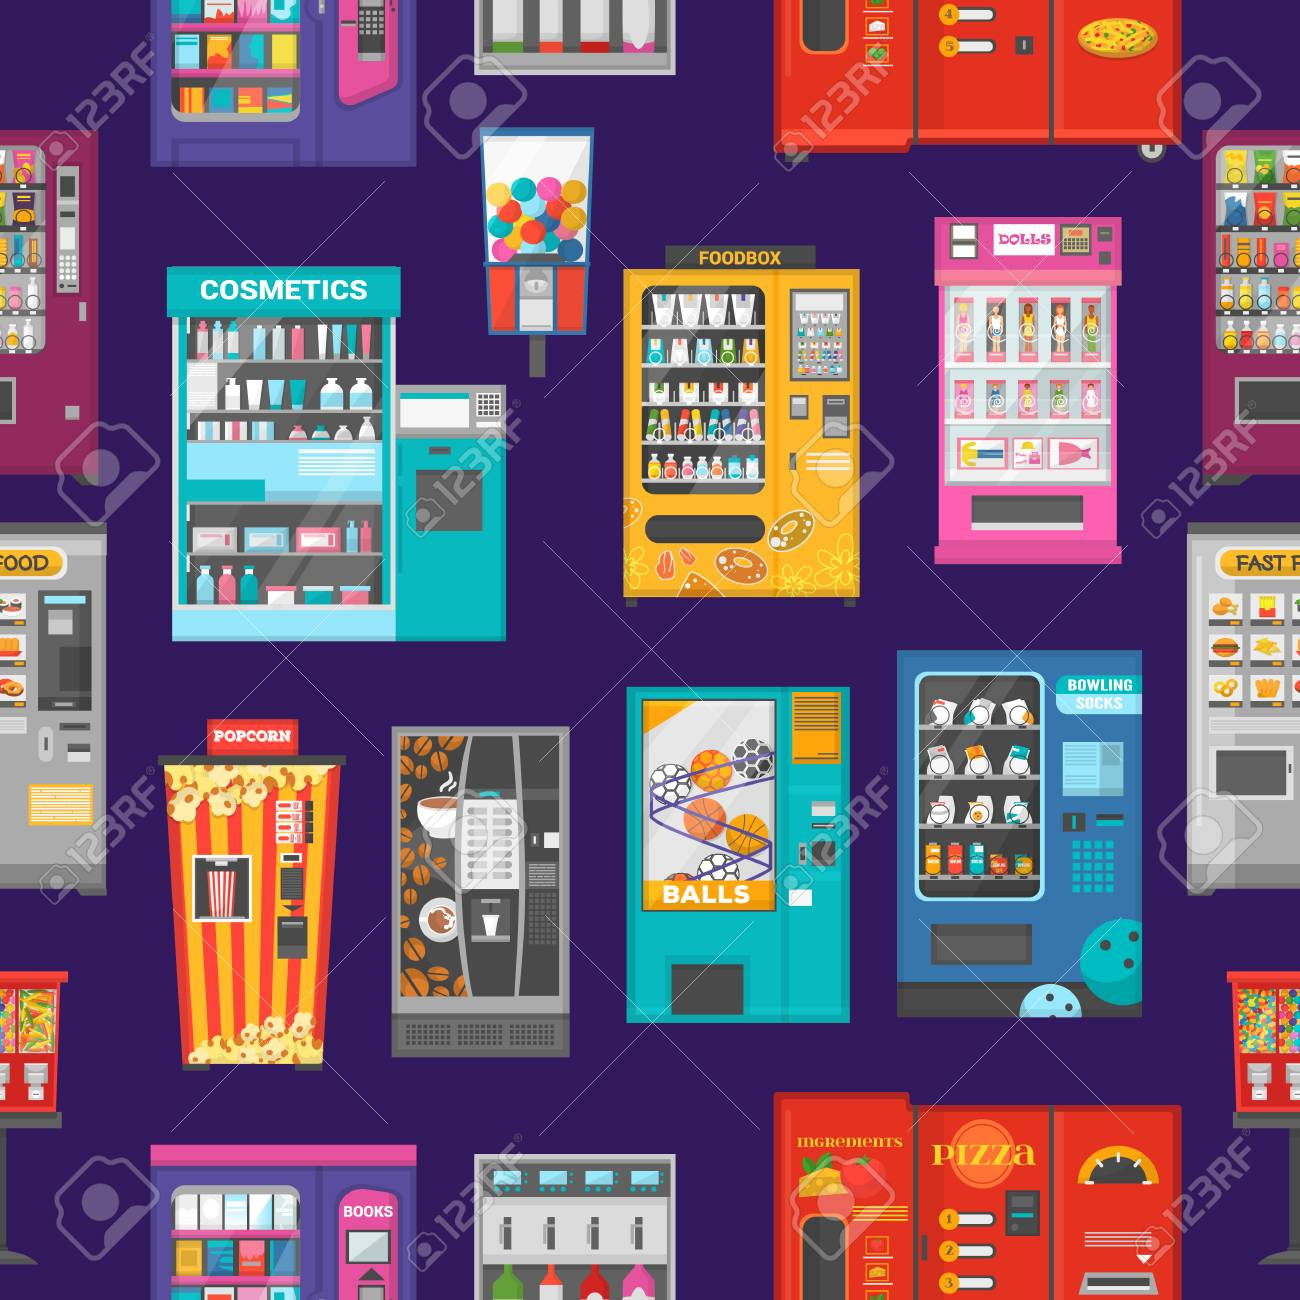 Vending machine vector vend food or beverages and vendor machinery technology to buy snack or drinks illustration set seamless pattern background. - 114881084